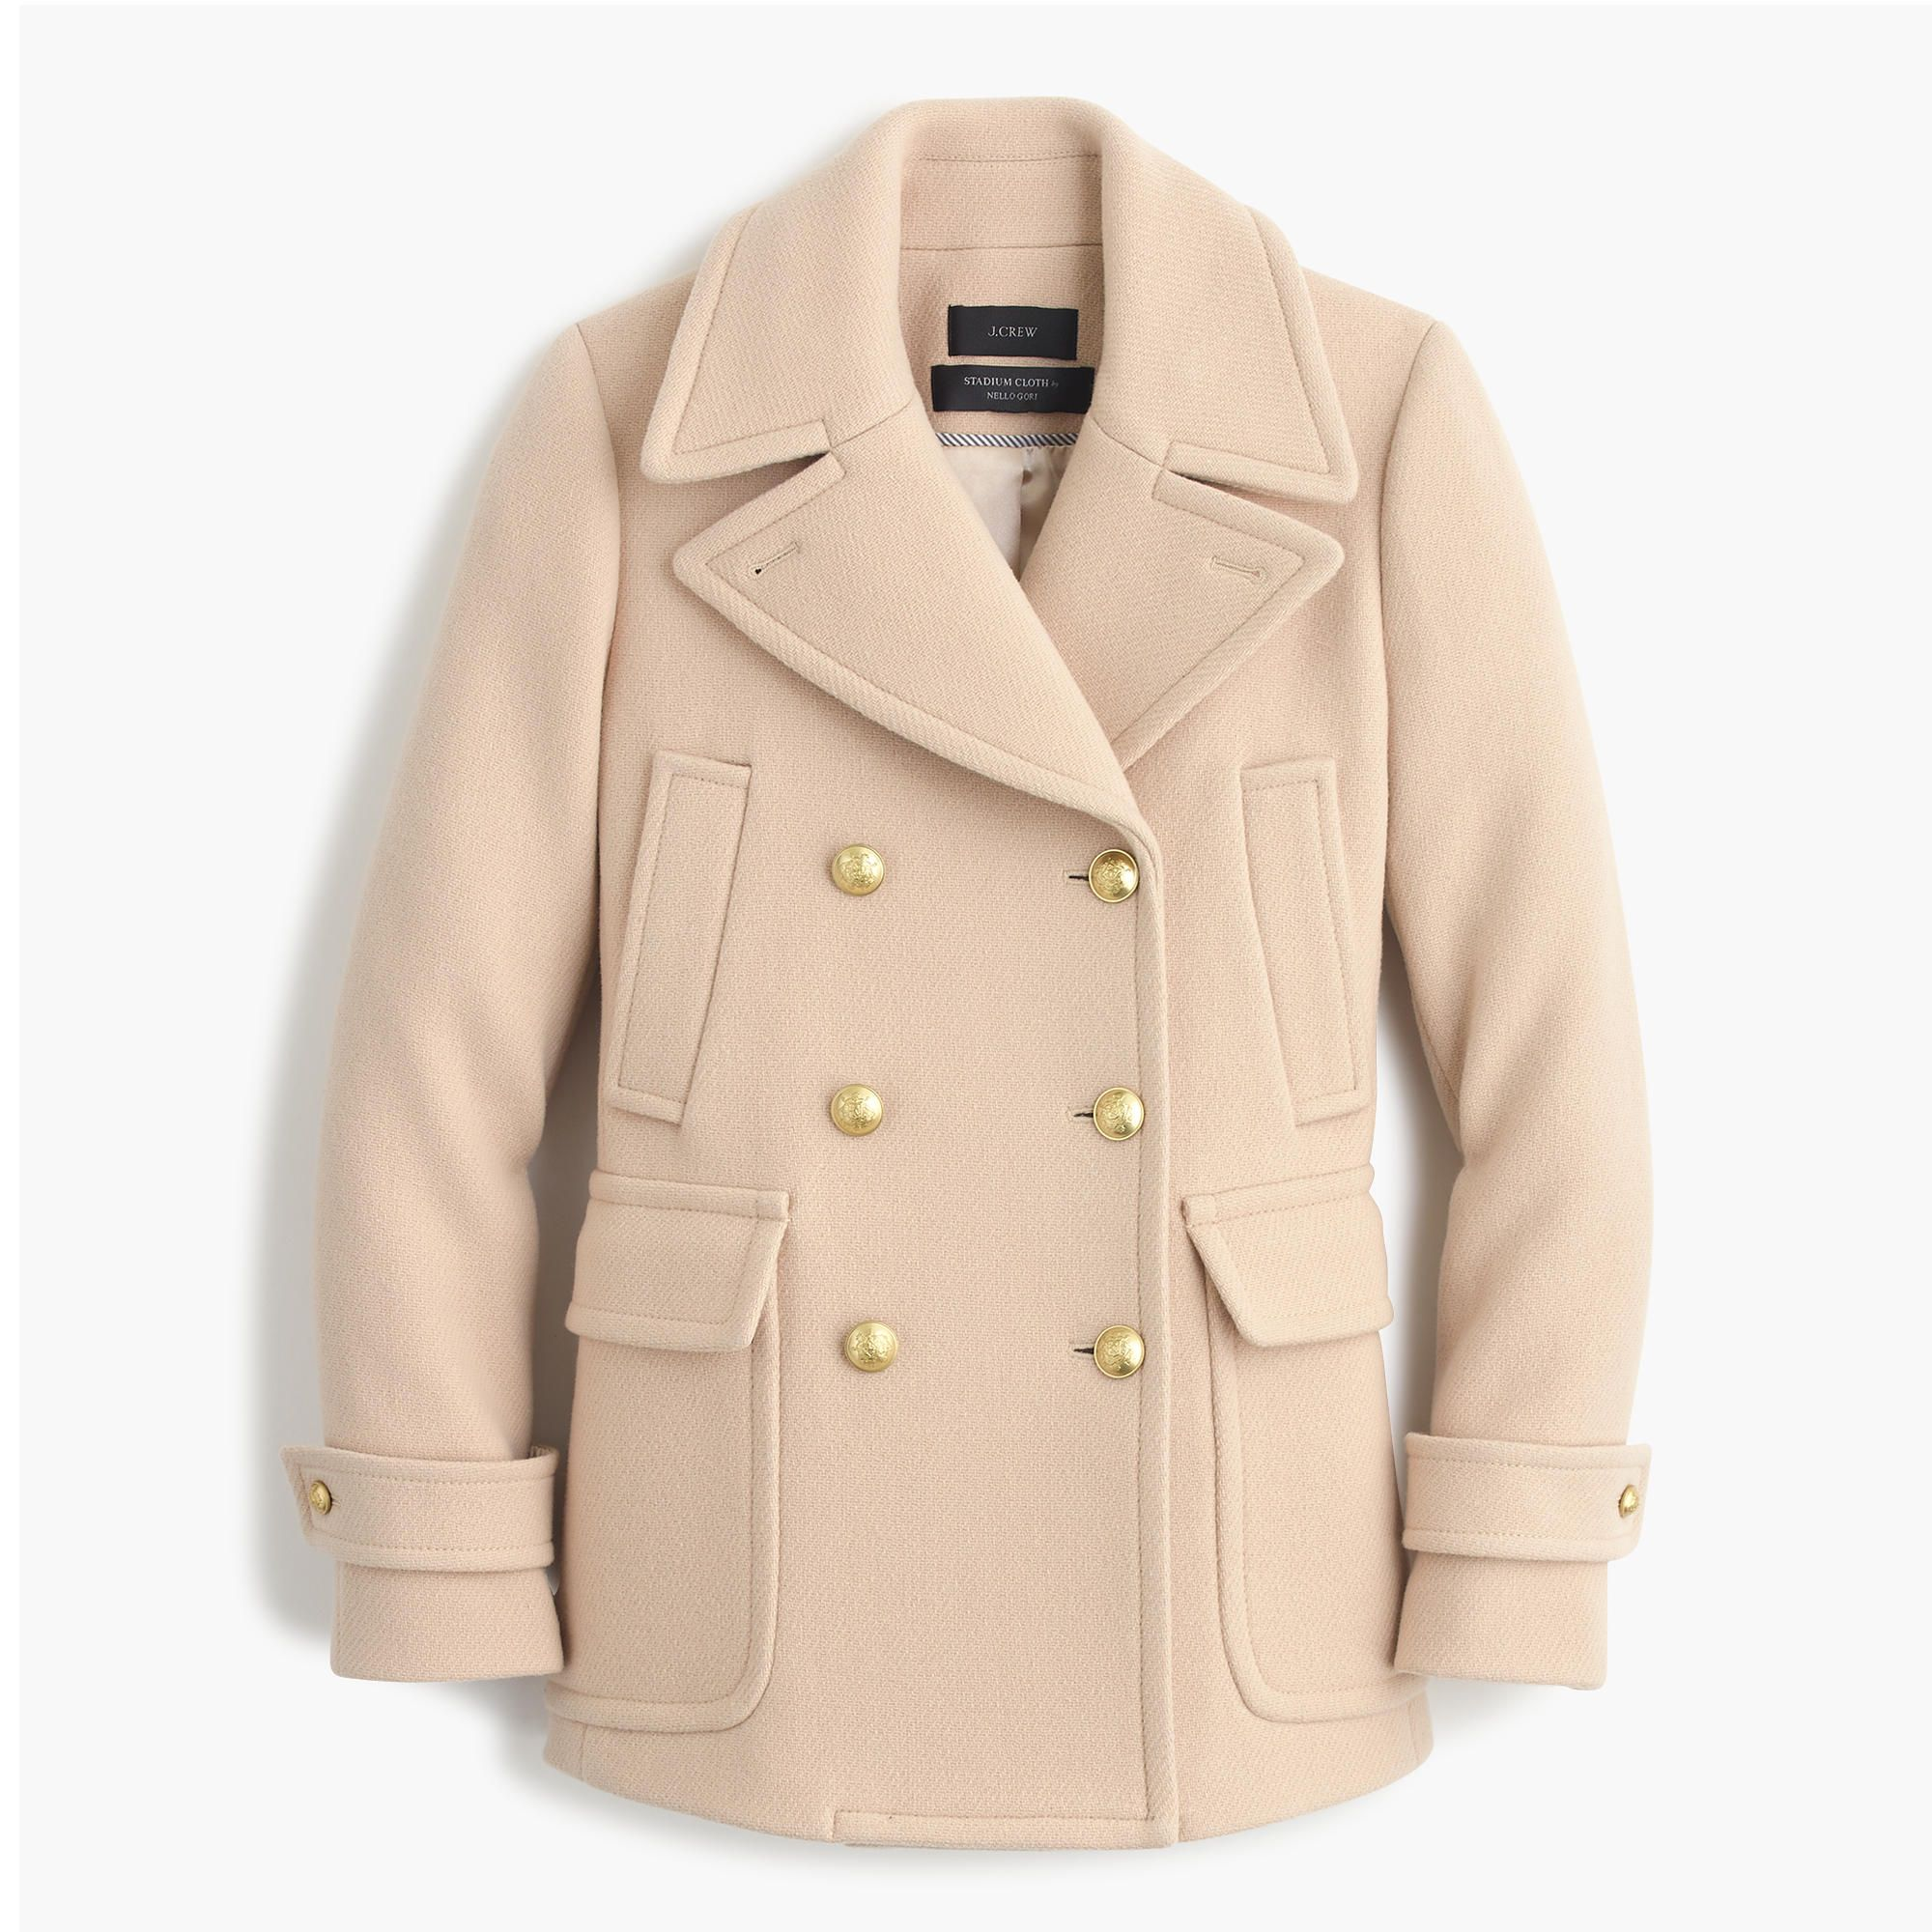 Stadium-cloth majesty peacoat : wool in dusty ginger   J.Crew